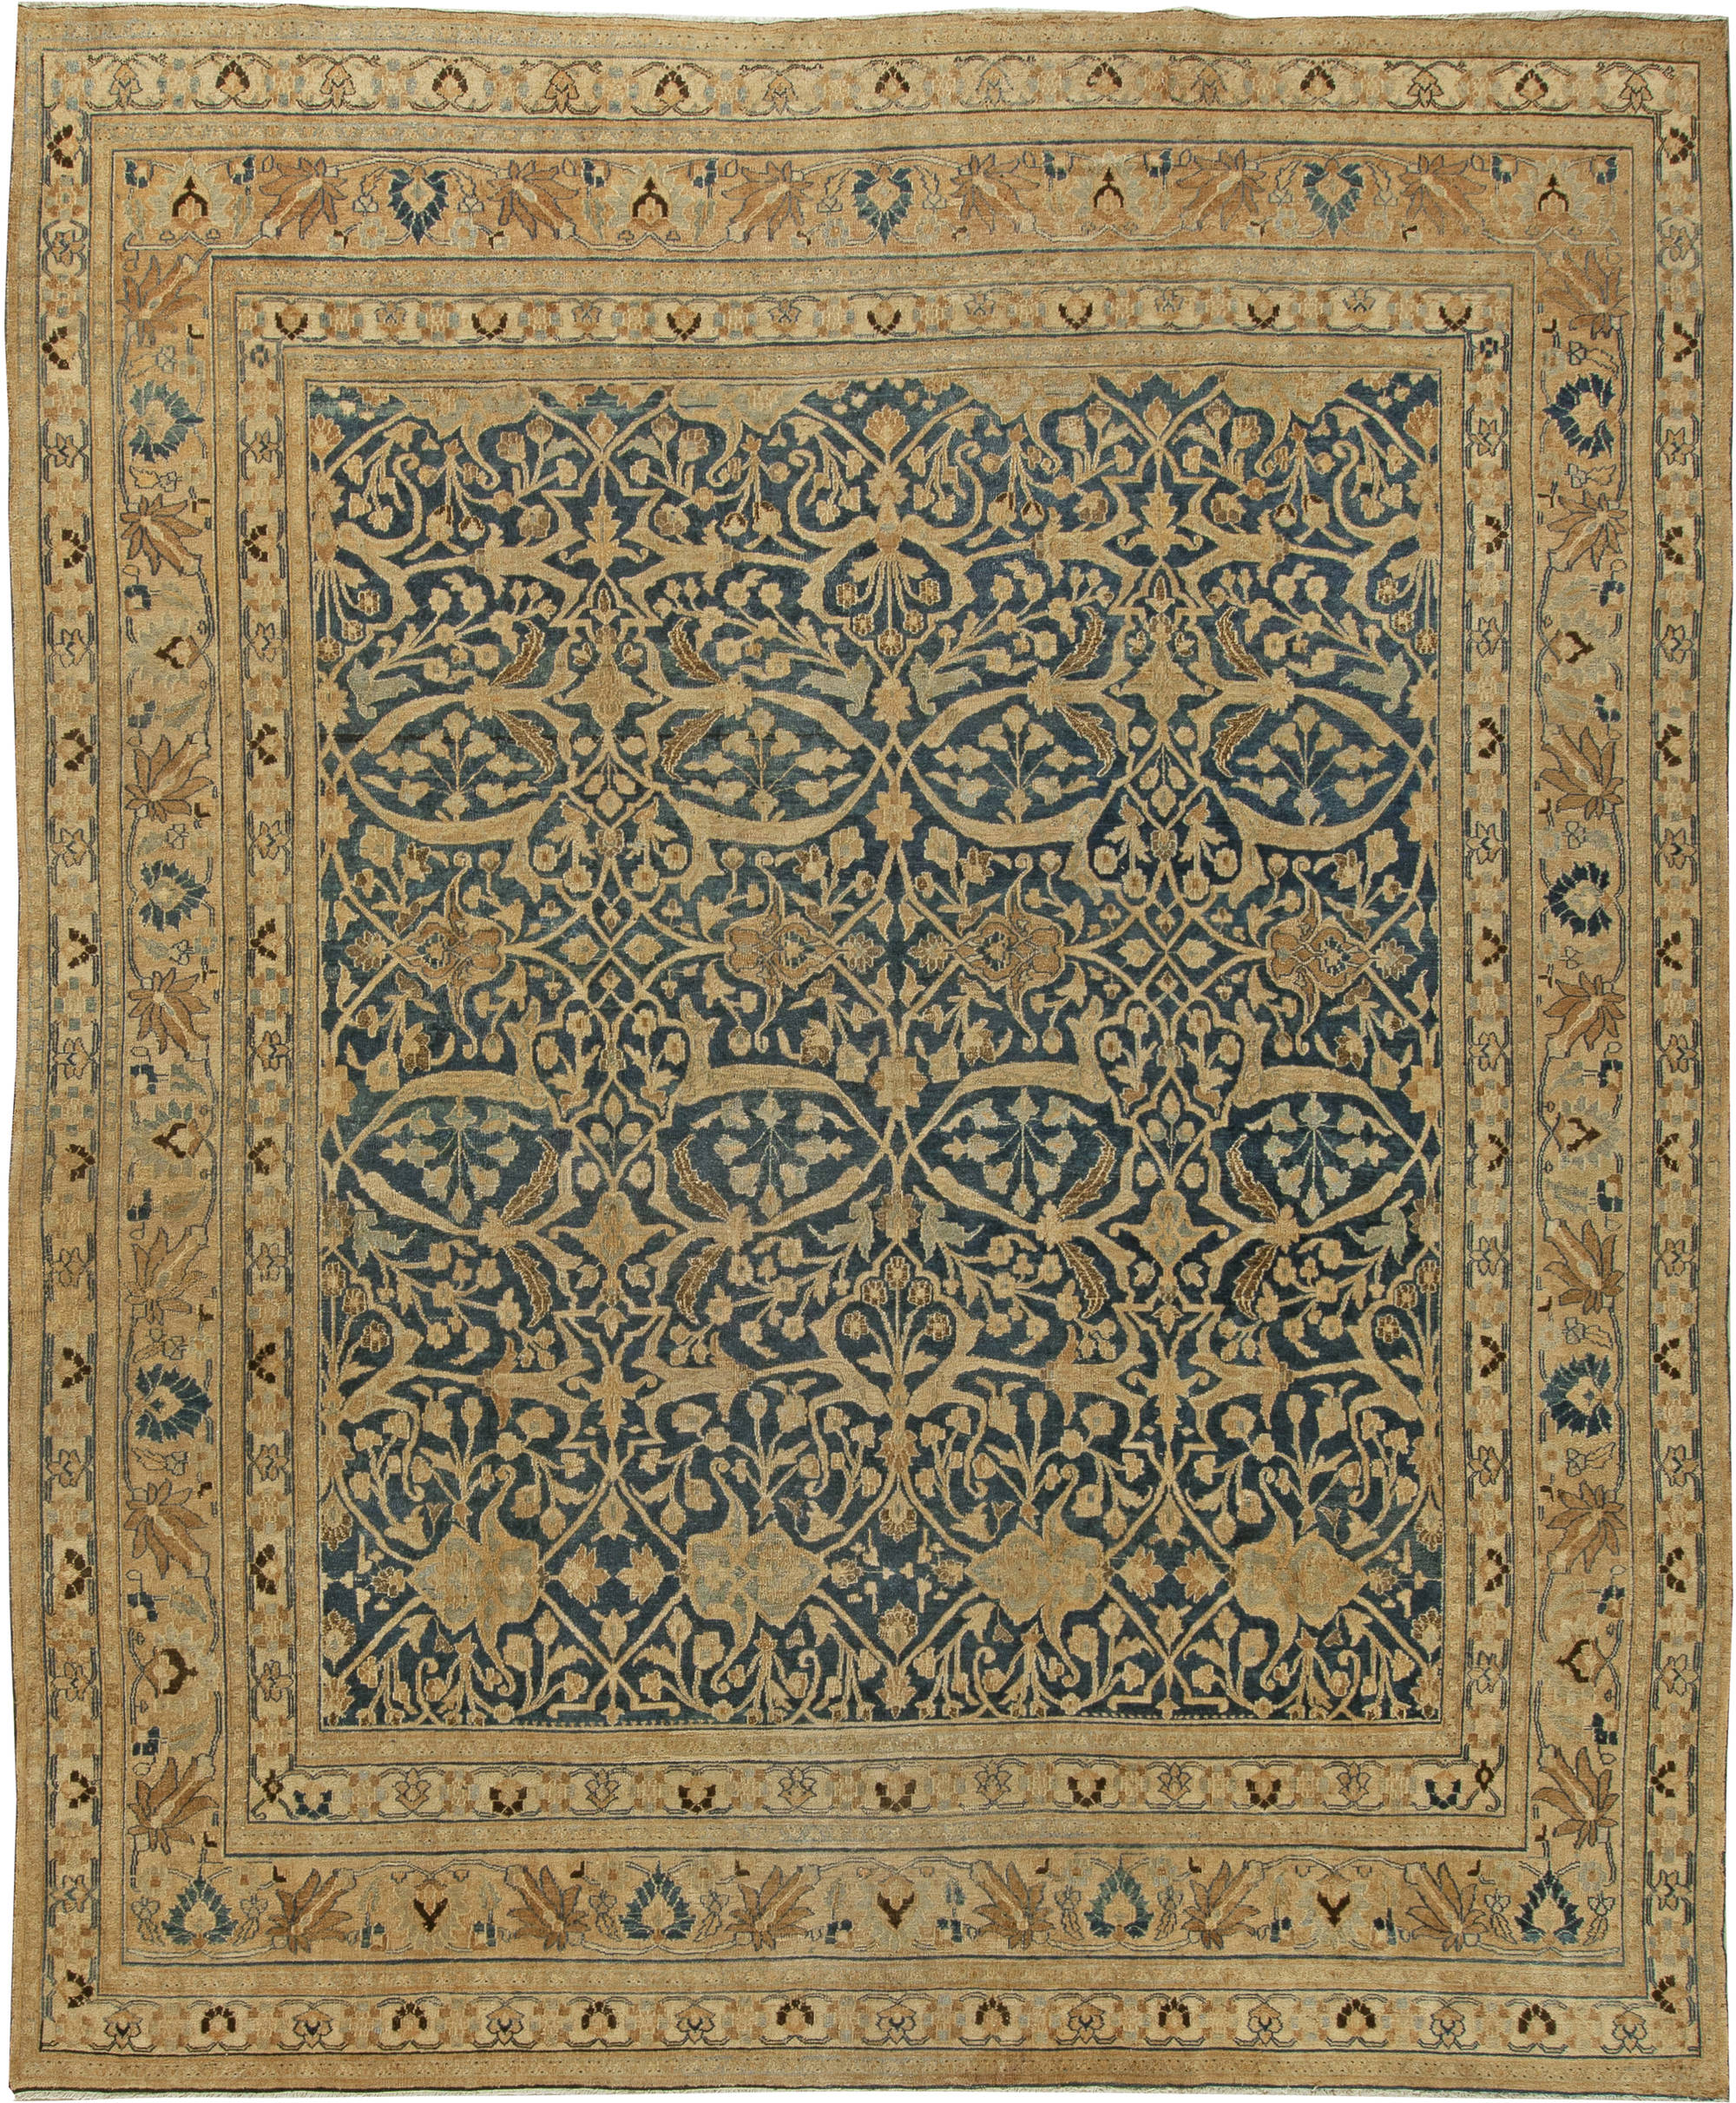 Meshad (Mashad) Rugs & Carpets For Sale (Antique Persian